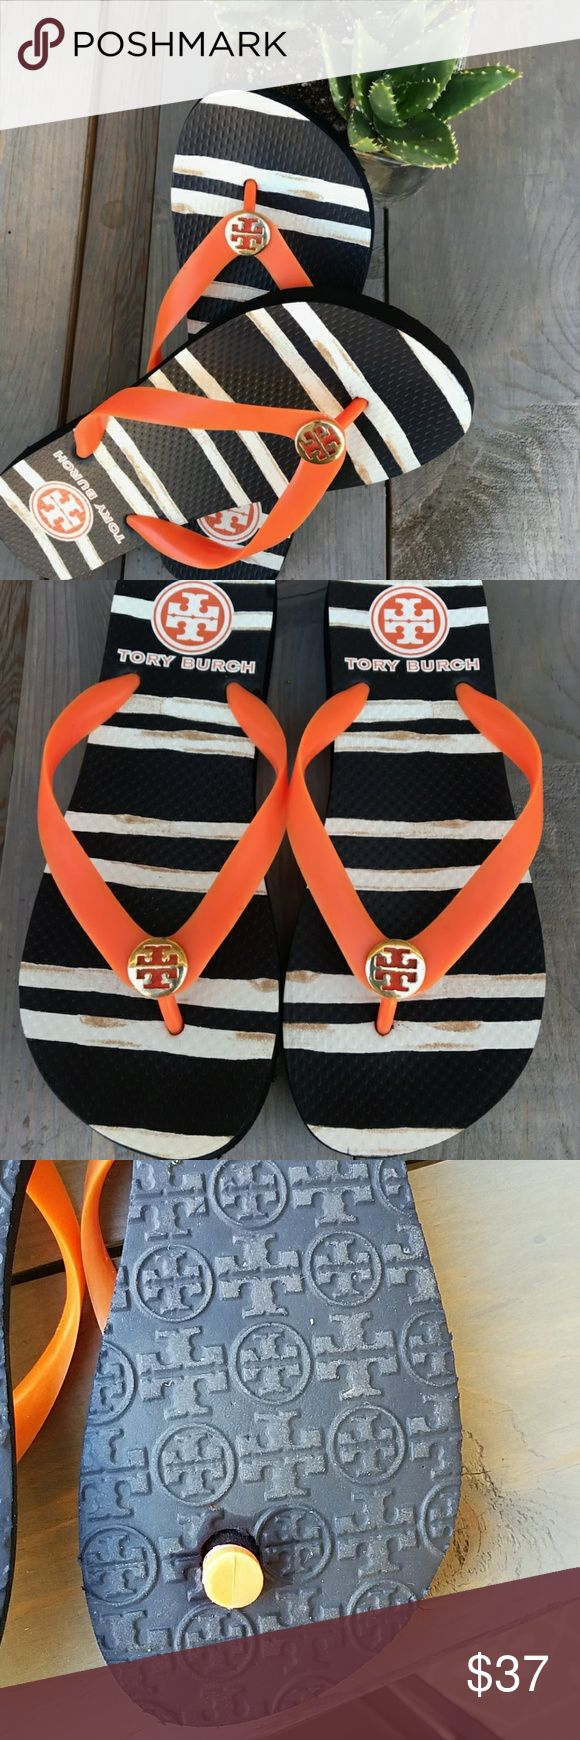 🌺 Tory Burch orange flip flops Super cute lightly worn. Tory Burch Shoes Sandals